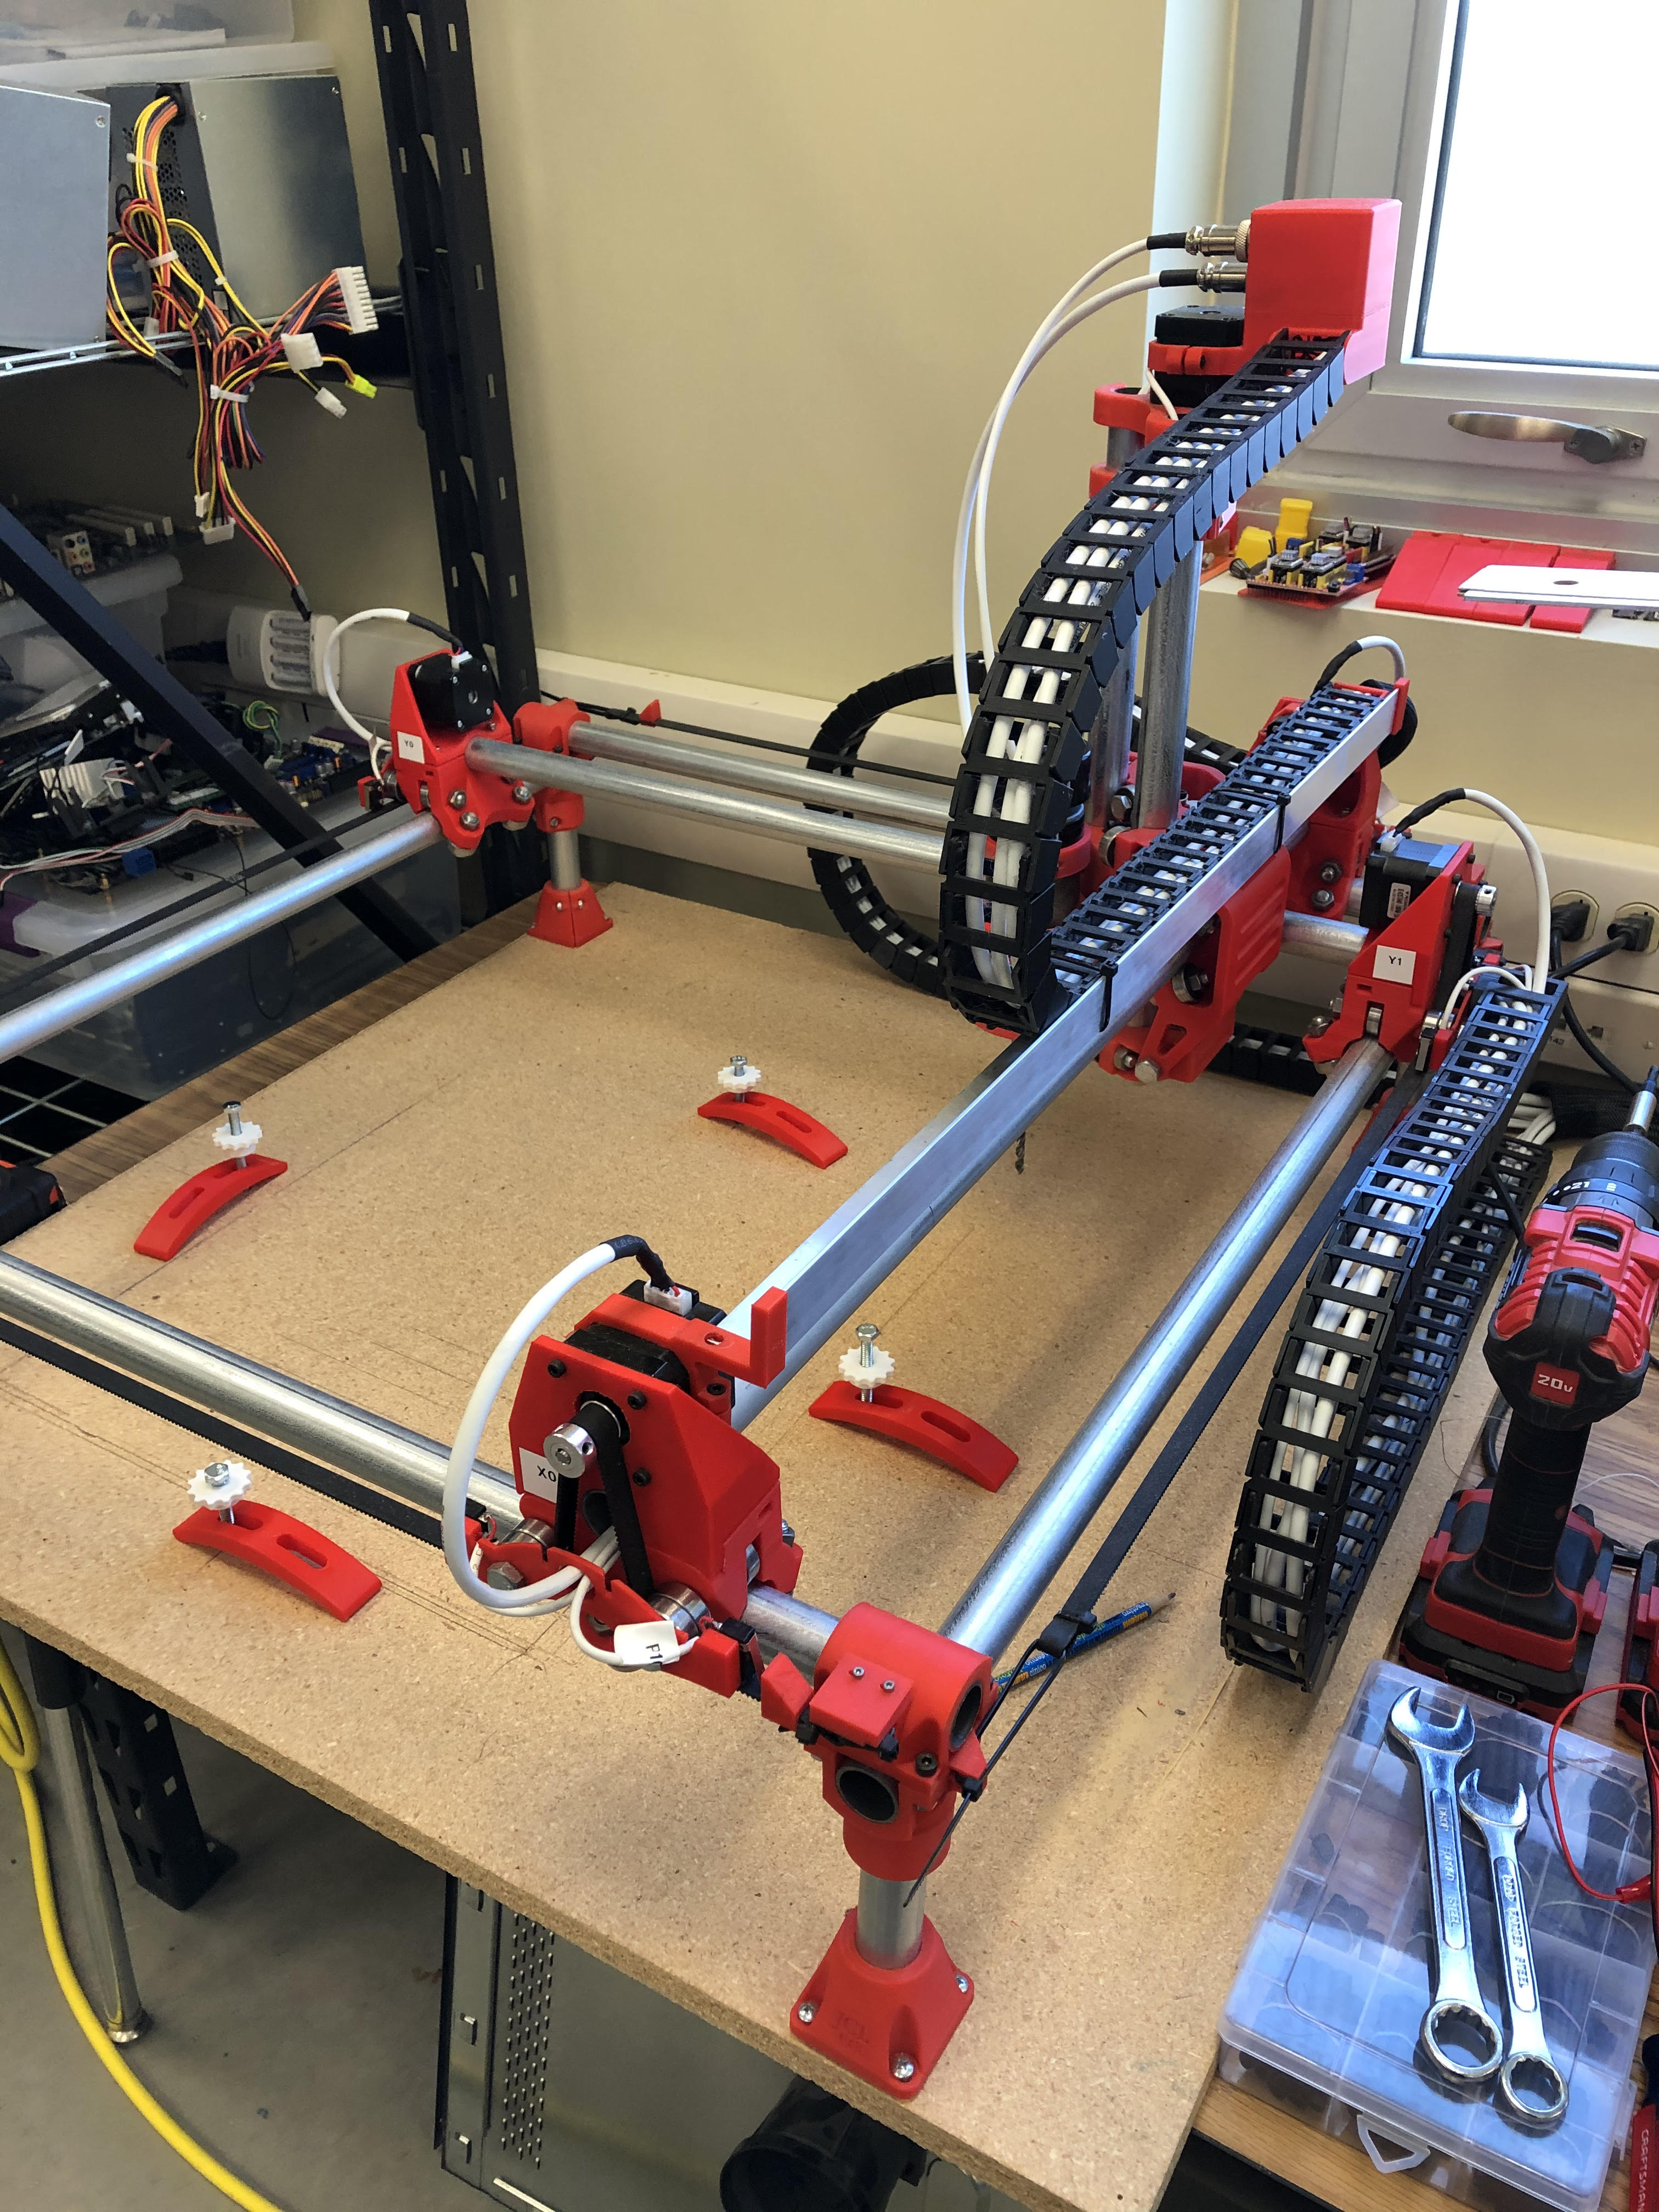 kimberly-it-student-manufactured-cnc-router